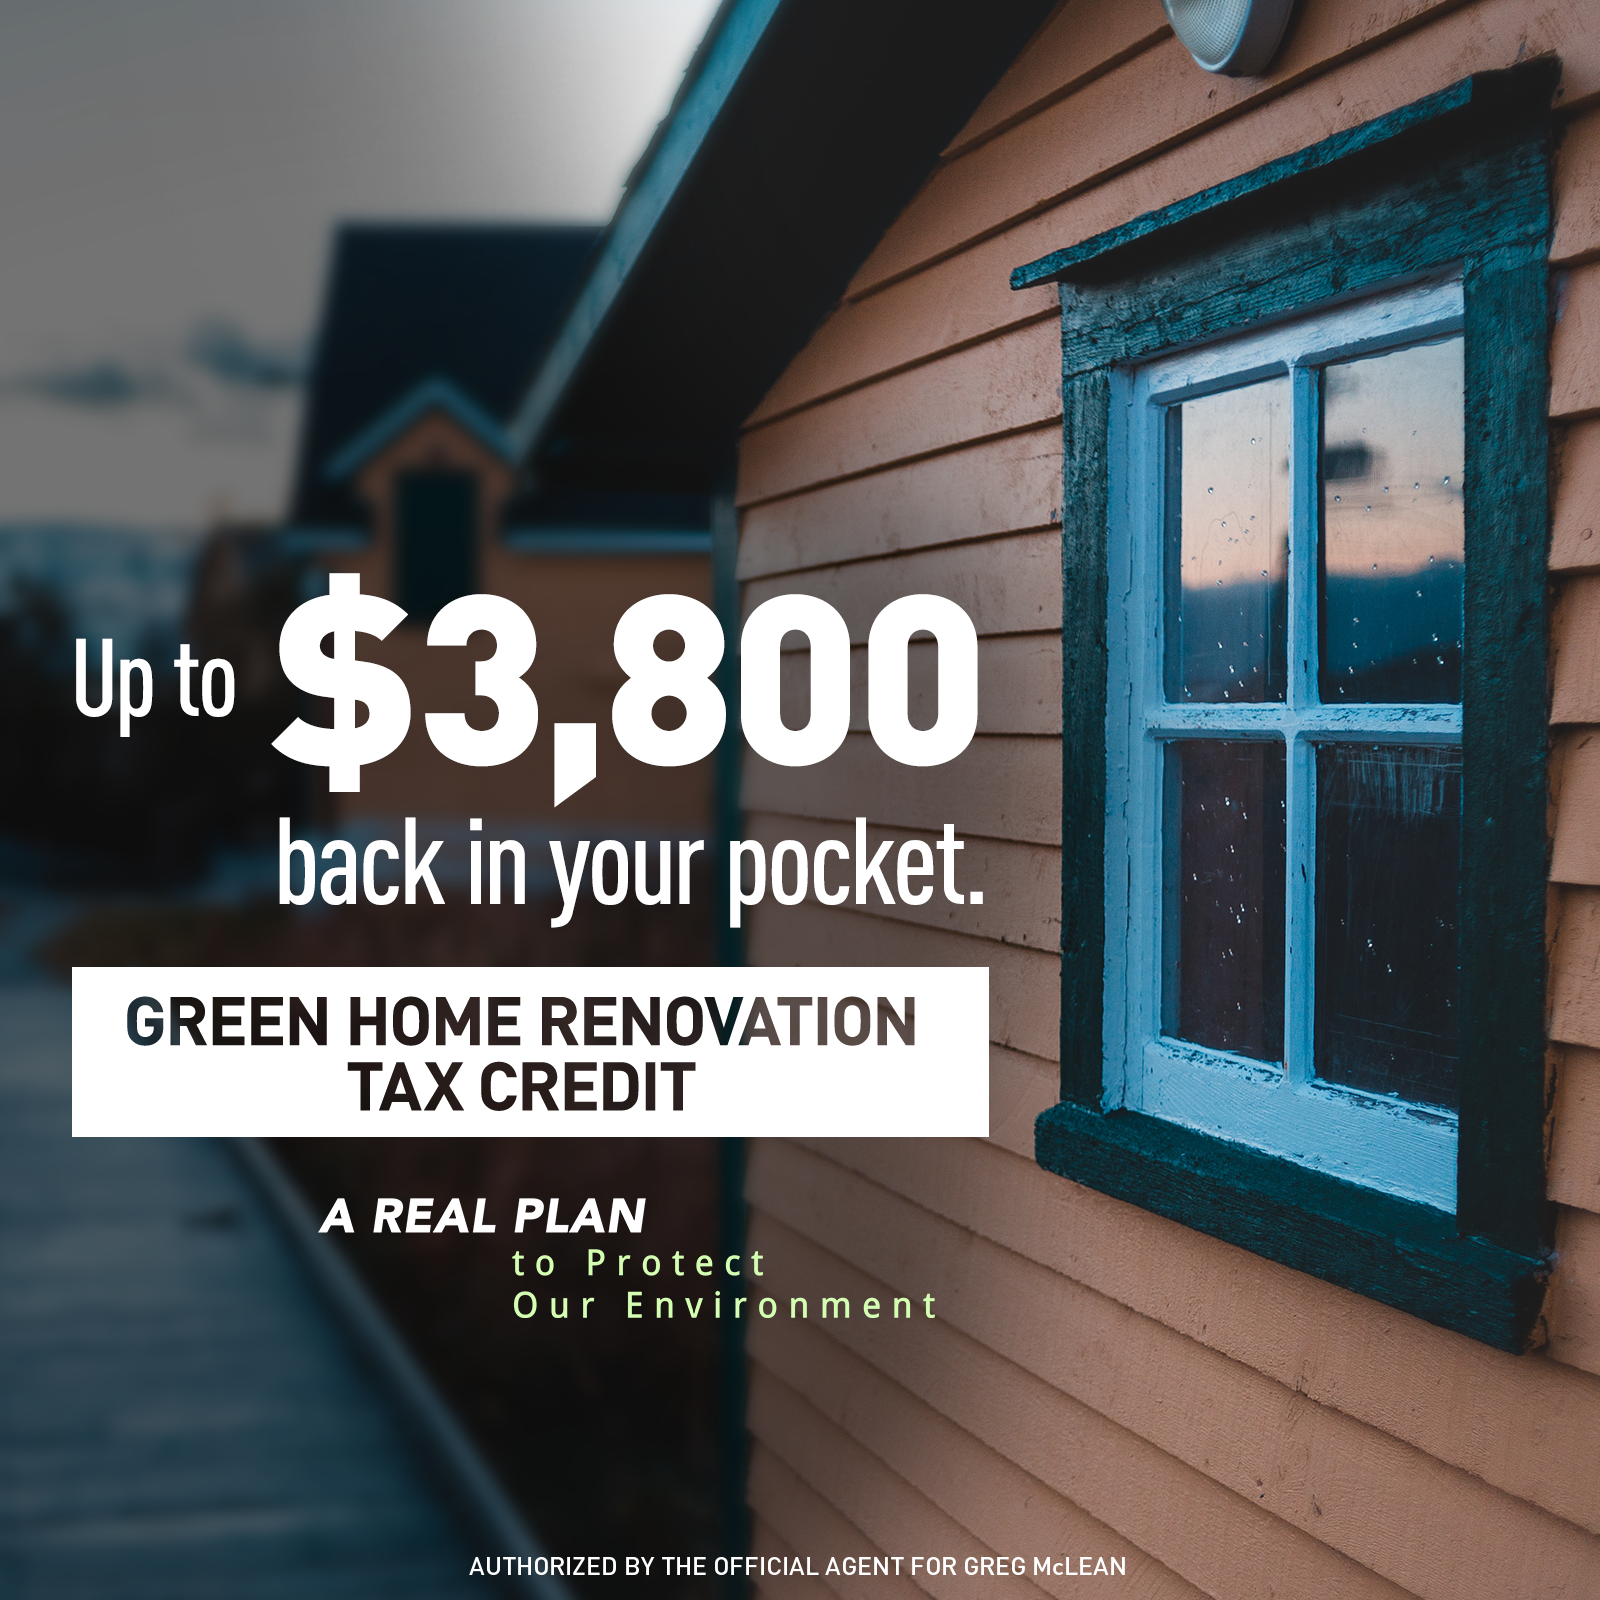 Green Homes - Conservatives will introduce a Green Homes Tax Credit for green home renovations and improvements. Canadians will be eligible to receive a 20% refundable credit for green improvements to their homes of over $1,000 and up to $20,000. This will allow Canadians to save up to $3,800 on their renovations each year.- The Green Homes Tax Credit will save Canadians money in the short term and in the long term. These home improvements do not just save energy; they can also save money through lower home energy costs. Green home improvements can contribute to the value of your home as well.- We want to encourage all Canadians to play a part in the fight against climate change. In 2017, buildings represented about 12 per cent of Canada's emissions, or 85 megatonnes of carbon dioxide equivalent. The Green Homes Tax Credit will help reduce emissions here at home.- The Green Homes Tax Credit is a two-year plan to encourage and incentivize Canadians to adopt green home improvements.- Enviro Economics estimates that the Green Homes Tax Credit will reduce emissions by 9.02 megatonnes, resulting in energy savings that remain permanently after any retrofitting is complete.